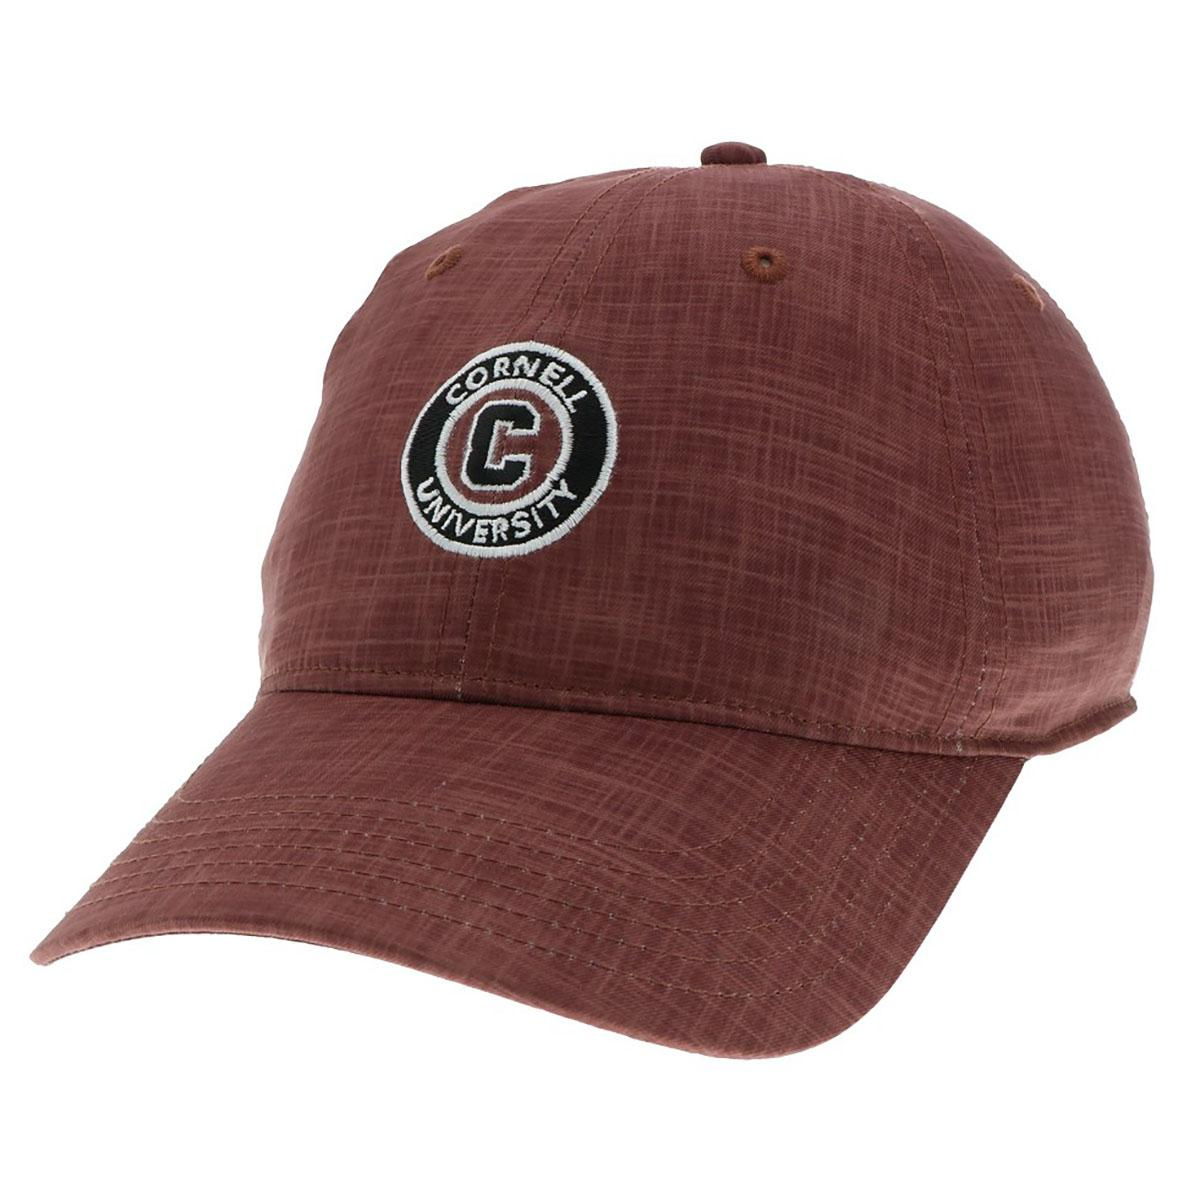 Cornell University Big Red Ivy League NCAA Relaxed Curved Baseball Ball Cap Hat